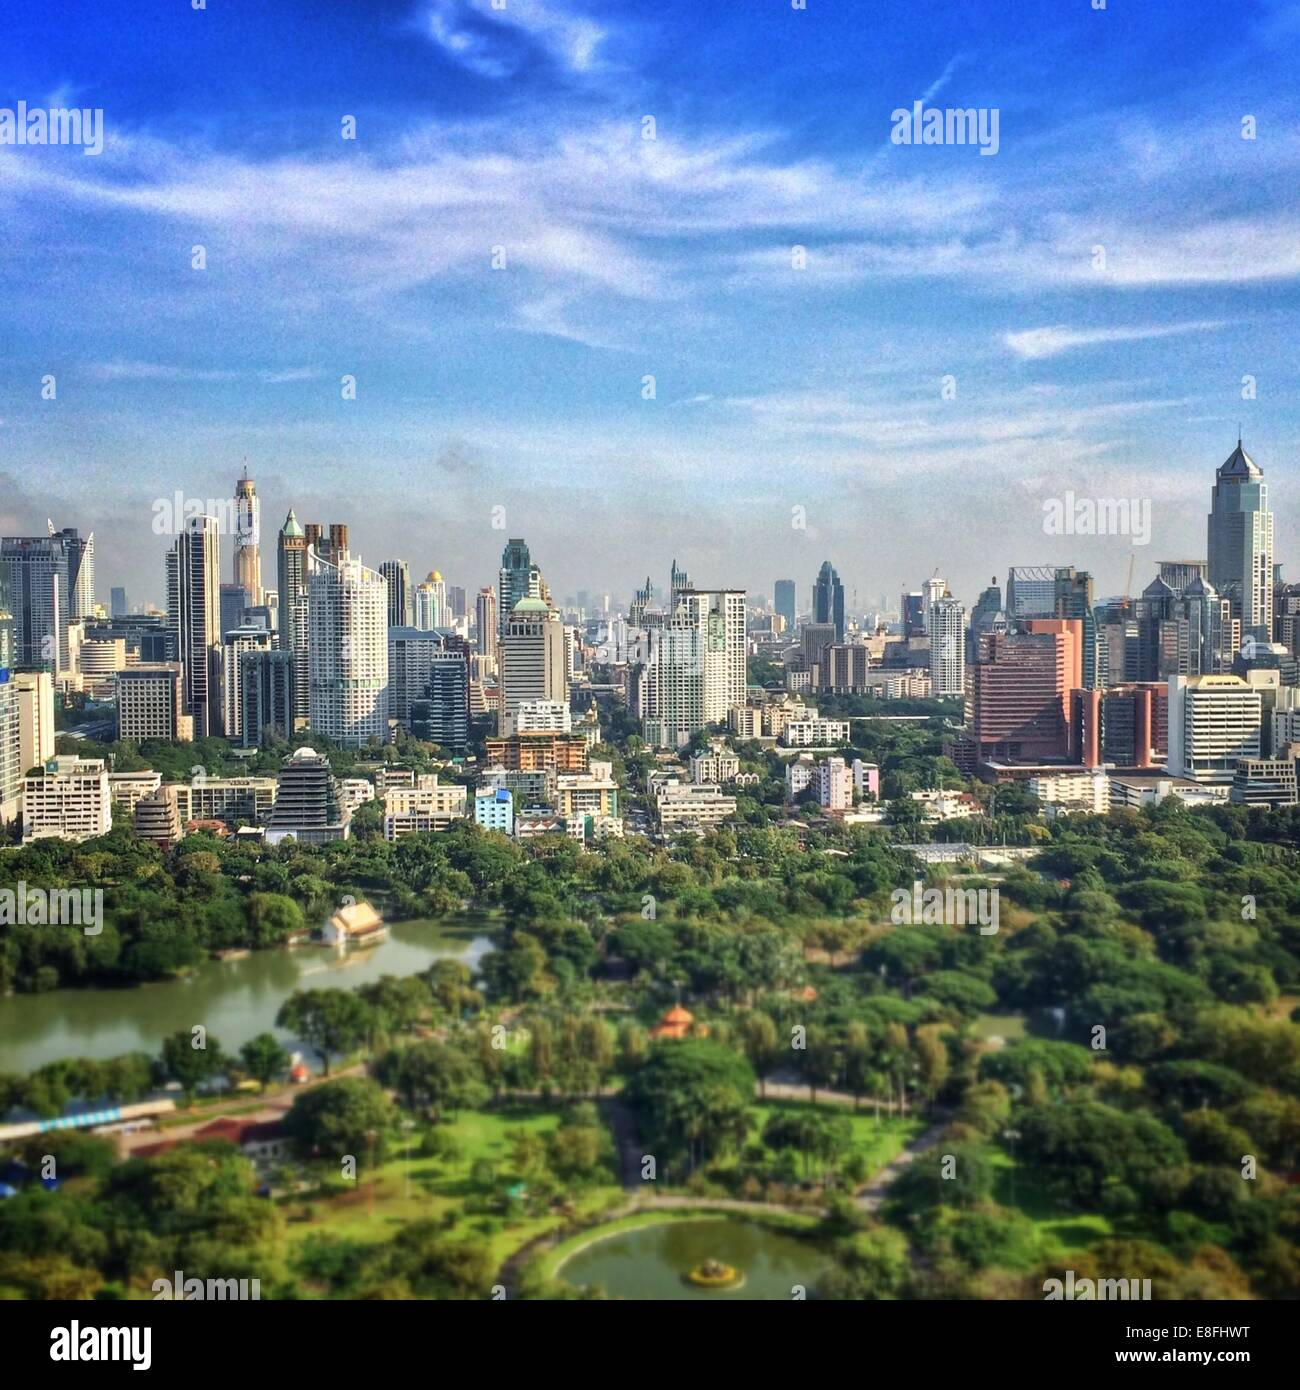 Thailand, Bangkok, Elevated view of cityscape - Stock Image